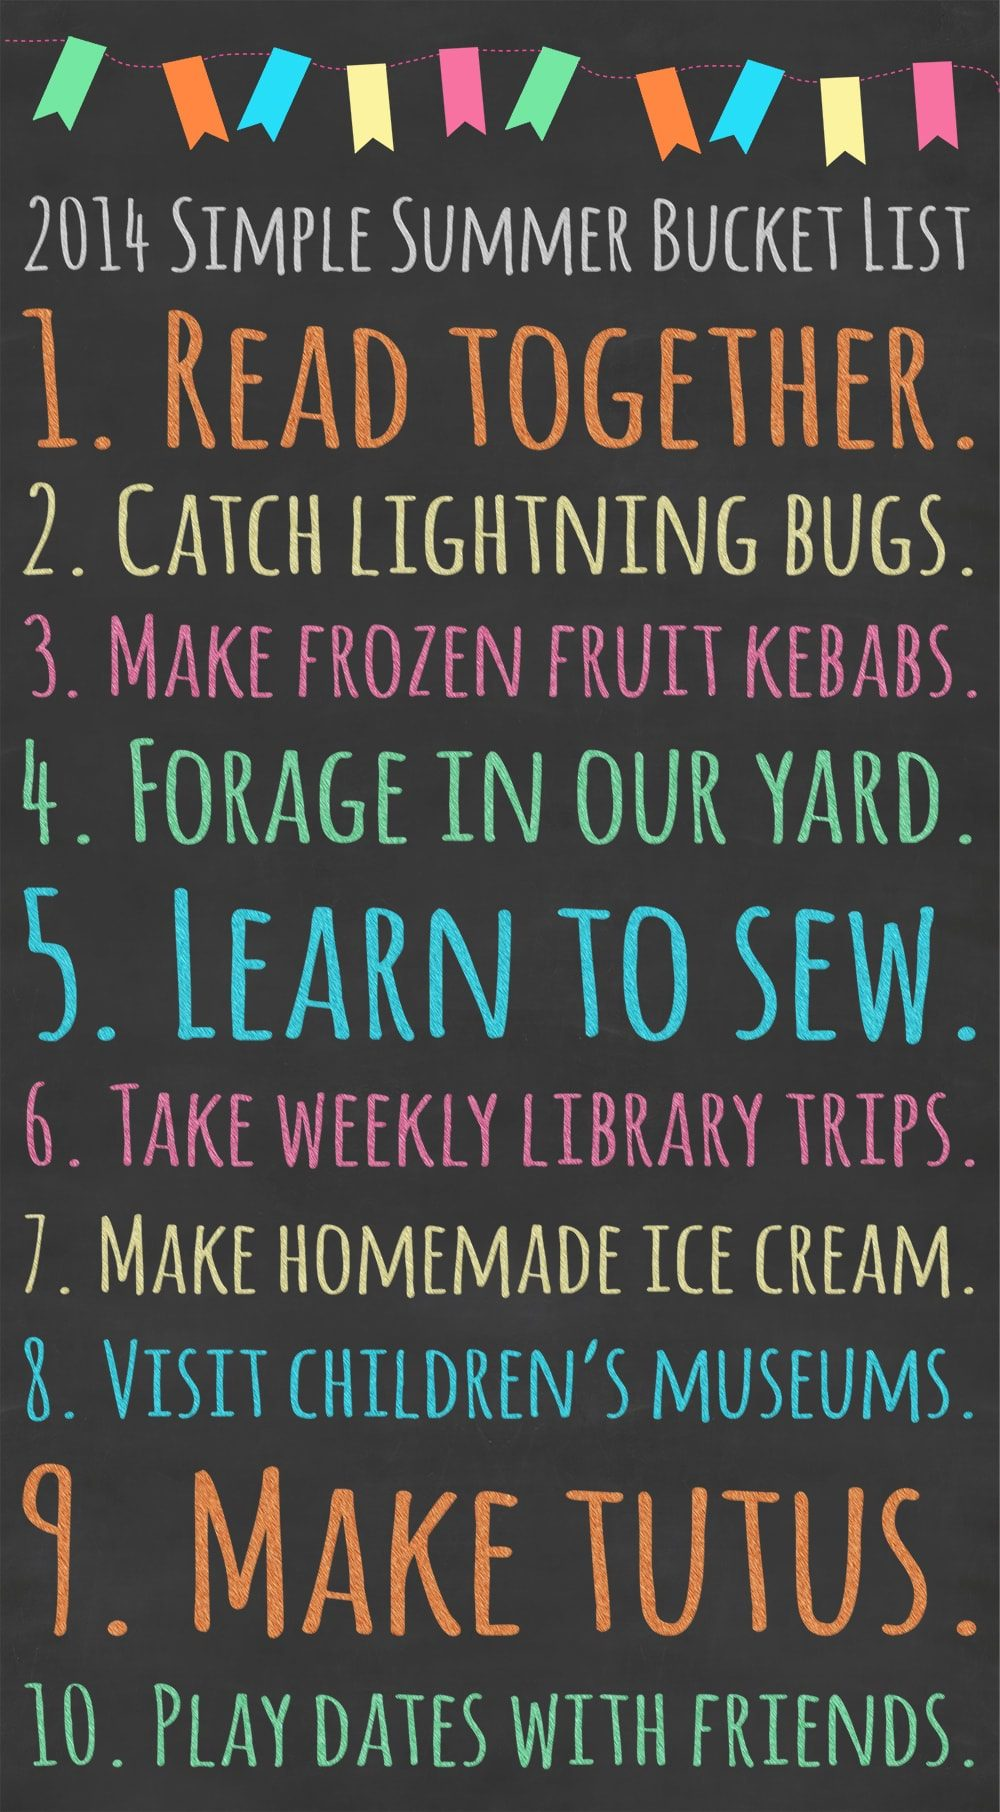 2014 Simple Summer Bucket List